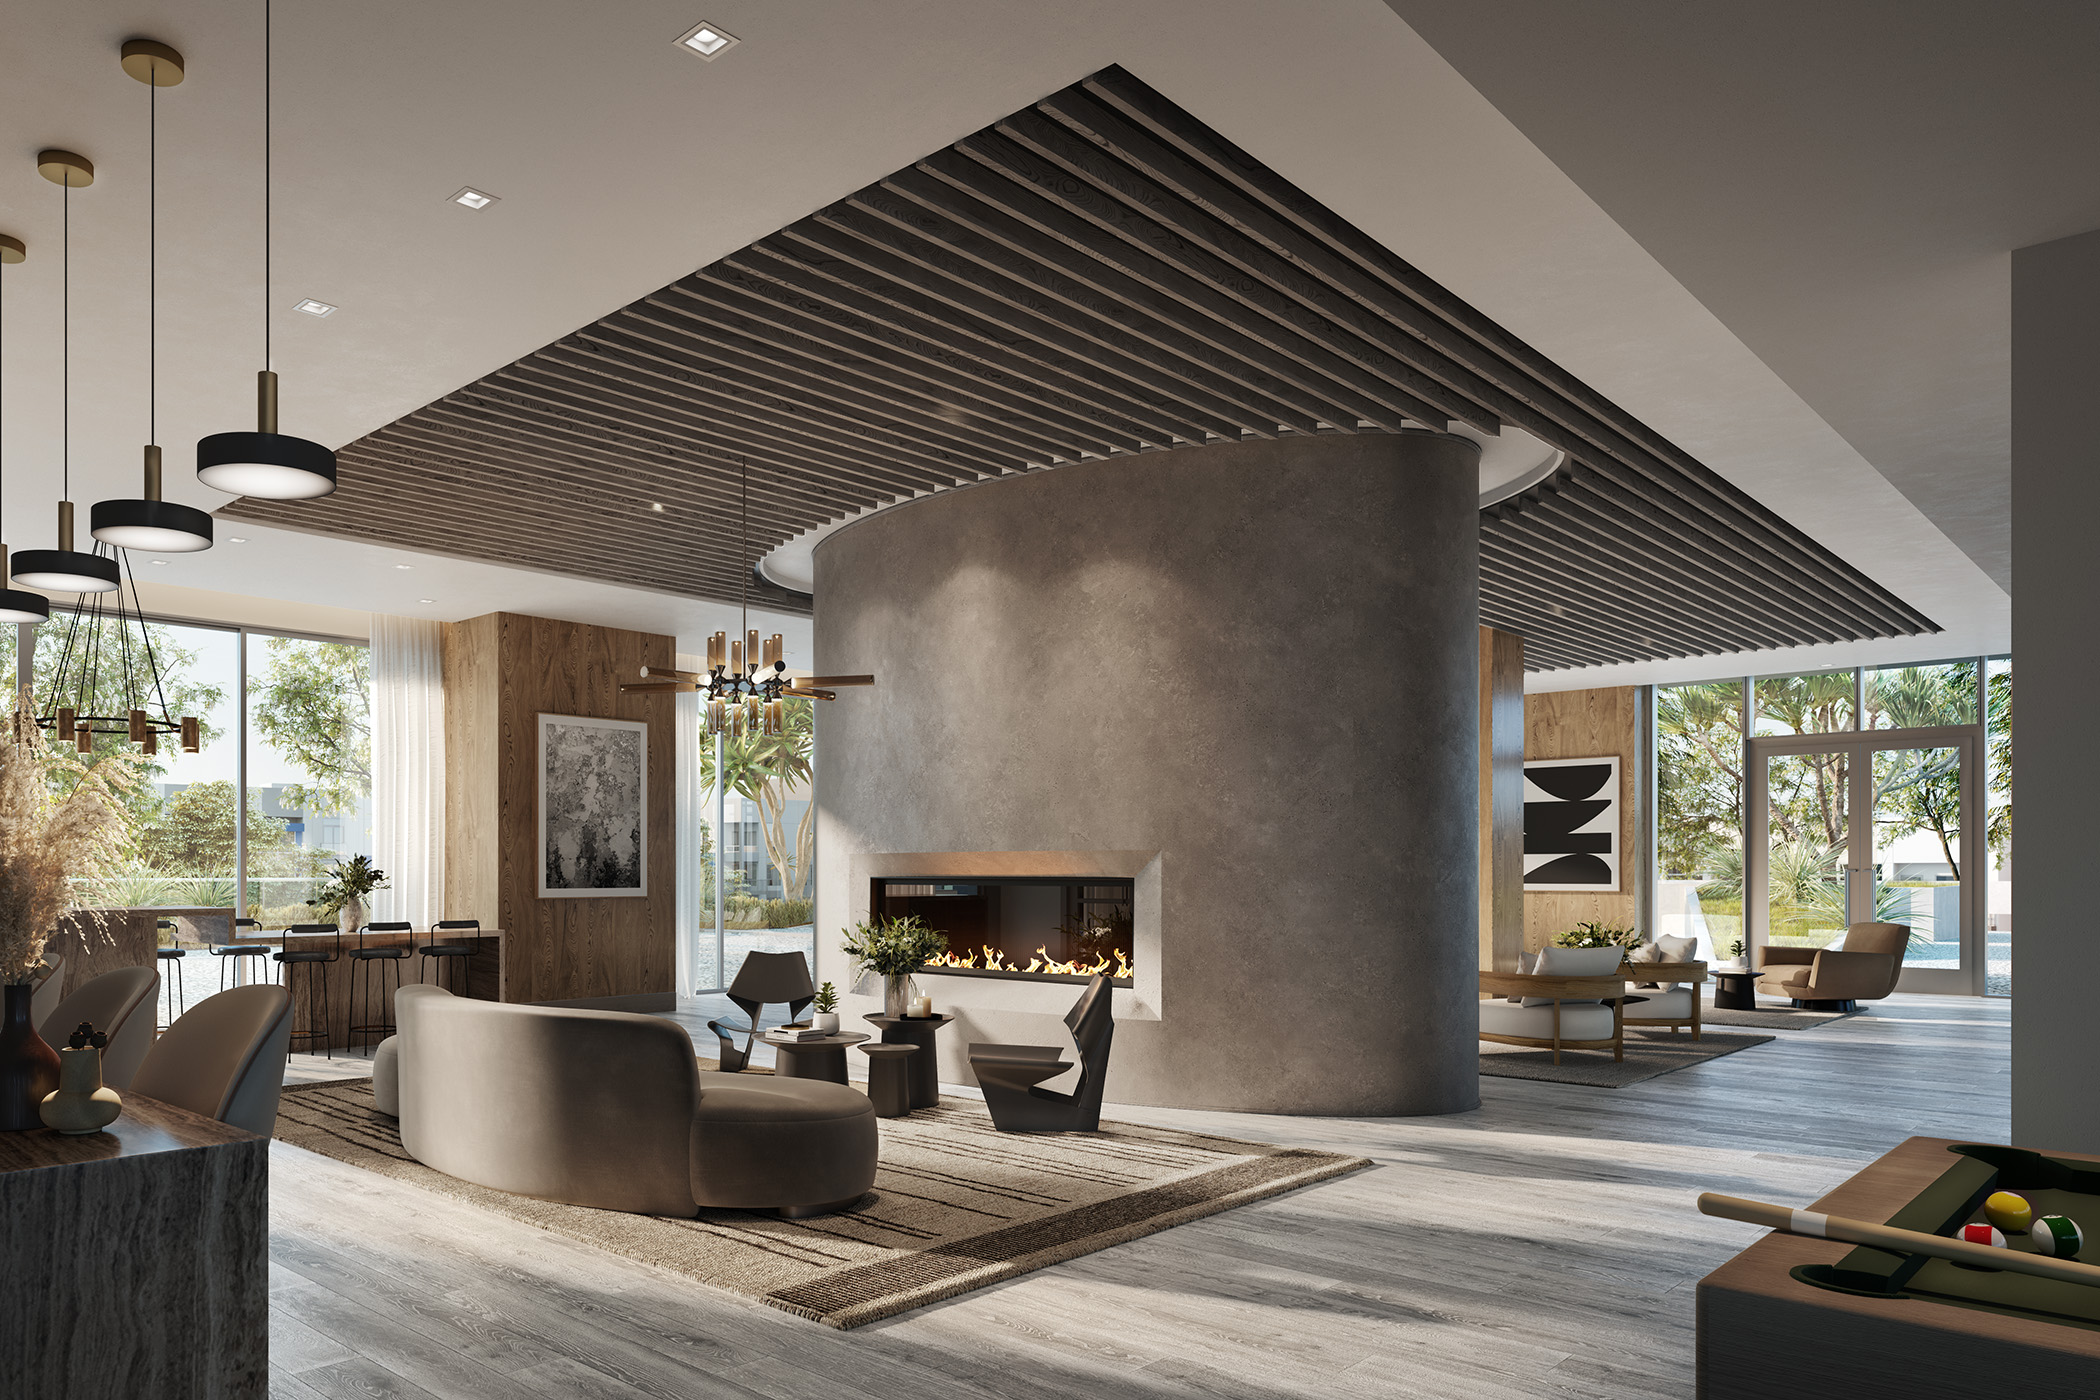 Interior of common space with modern fireplace, open seating with couches and chairs, and pool table.